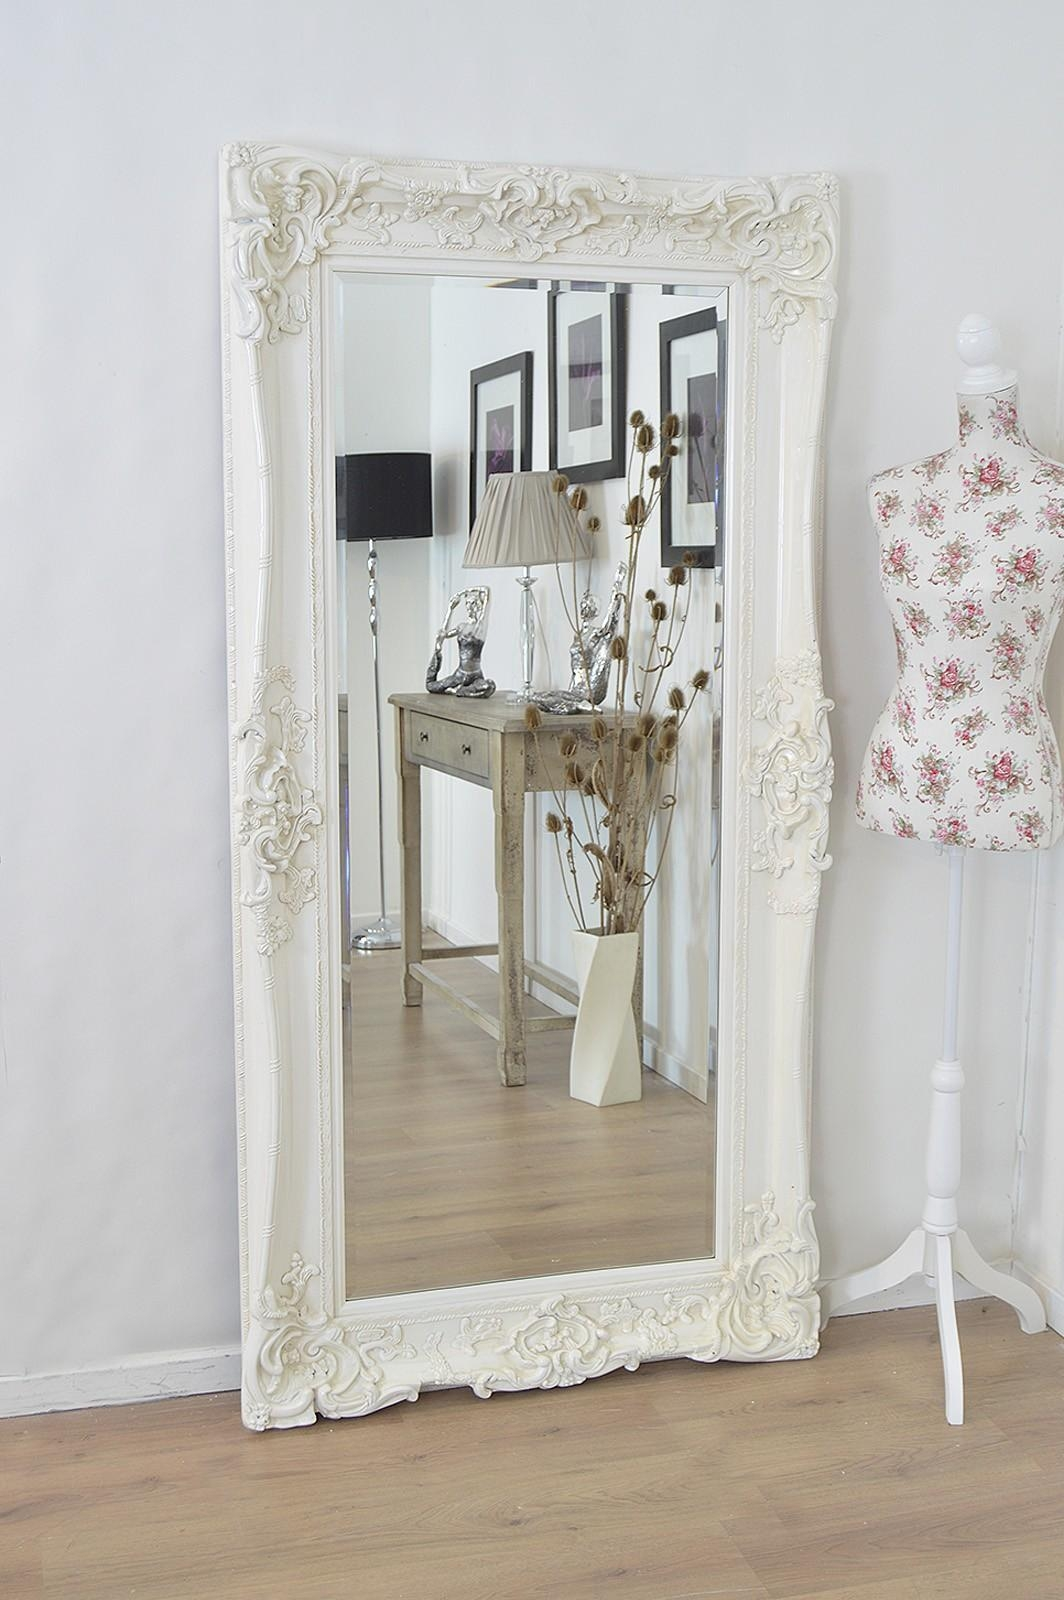 Shabby Chic Wall Mirror 22 Awesome Exterior With Large Silver Intended For Silver Ornate Wall Mirror (Image 17 of 20)